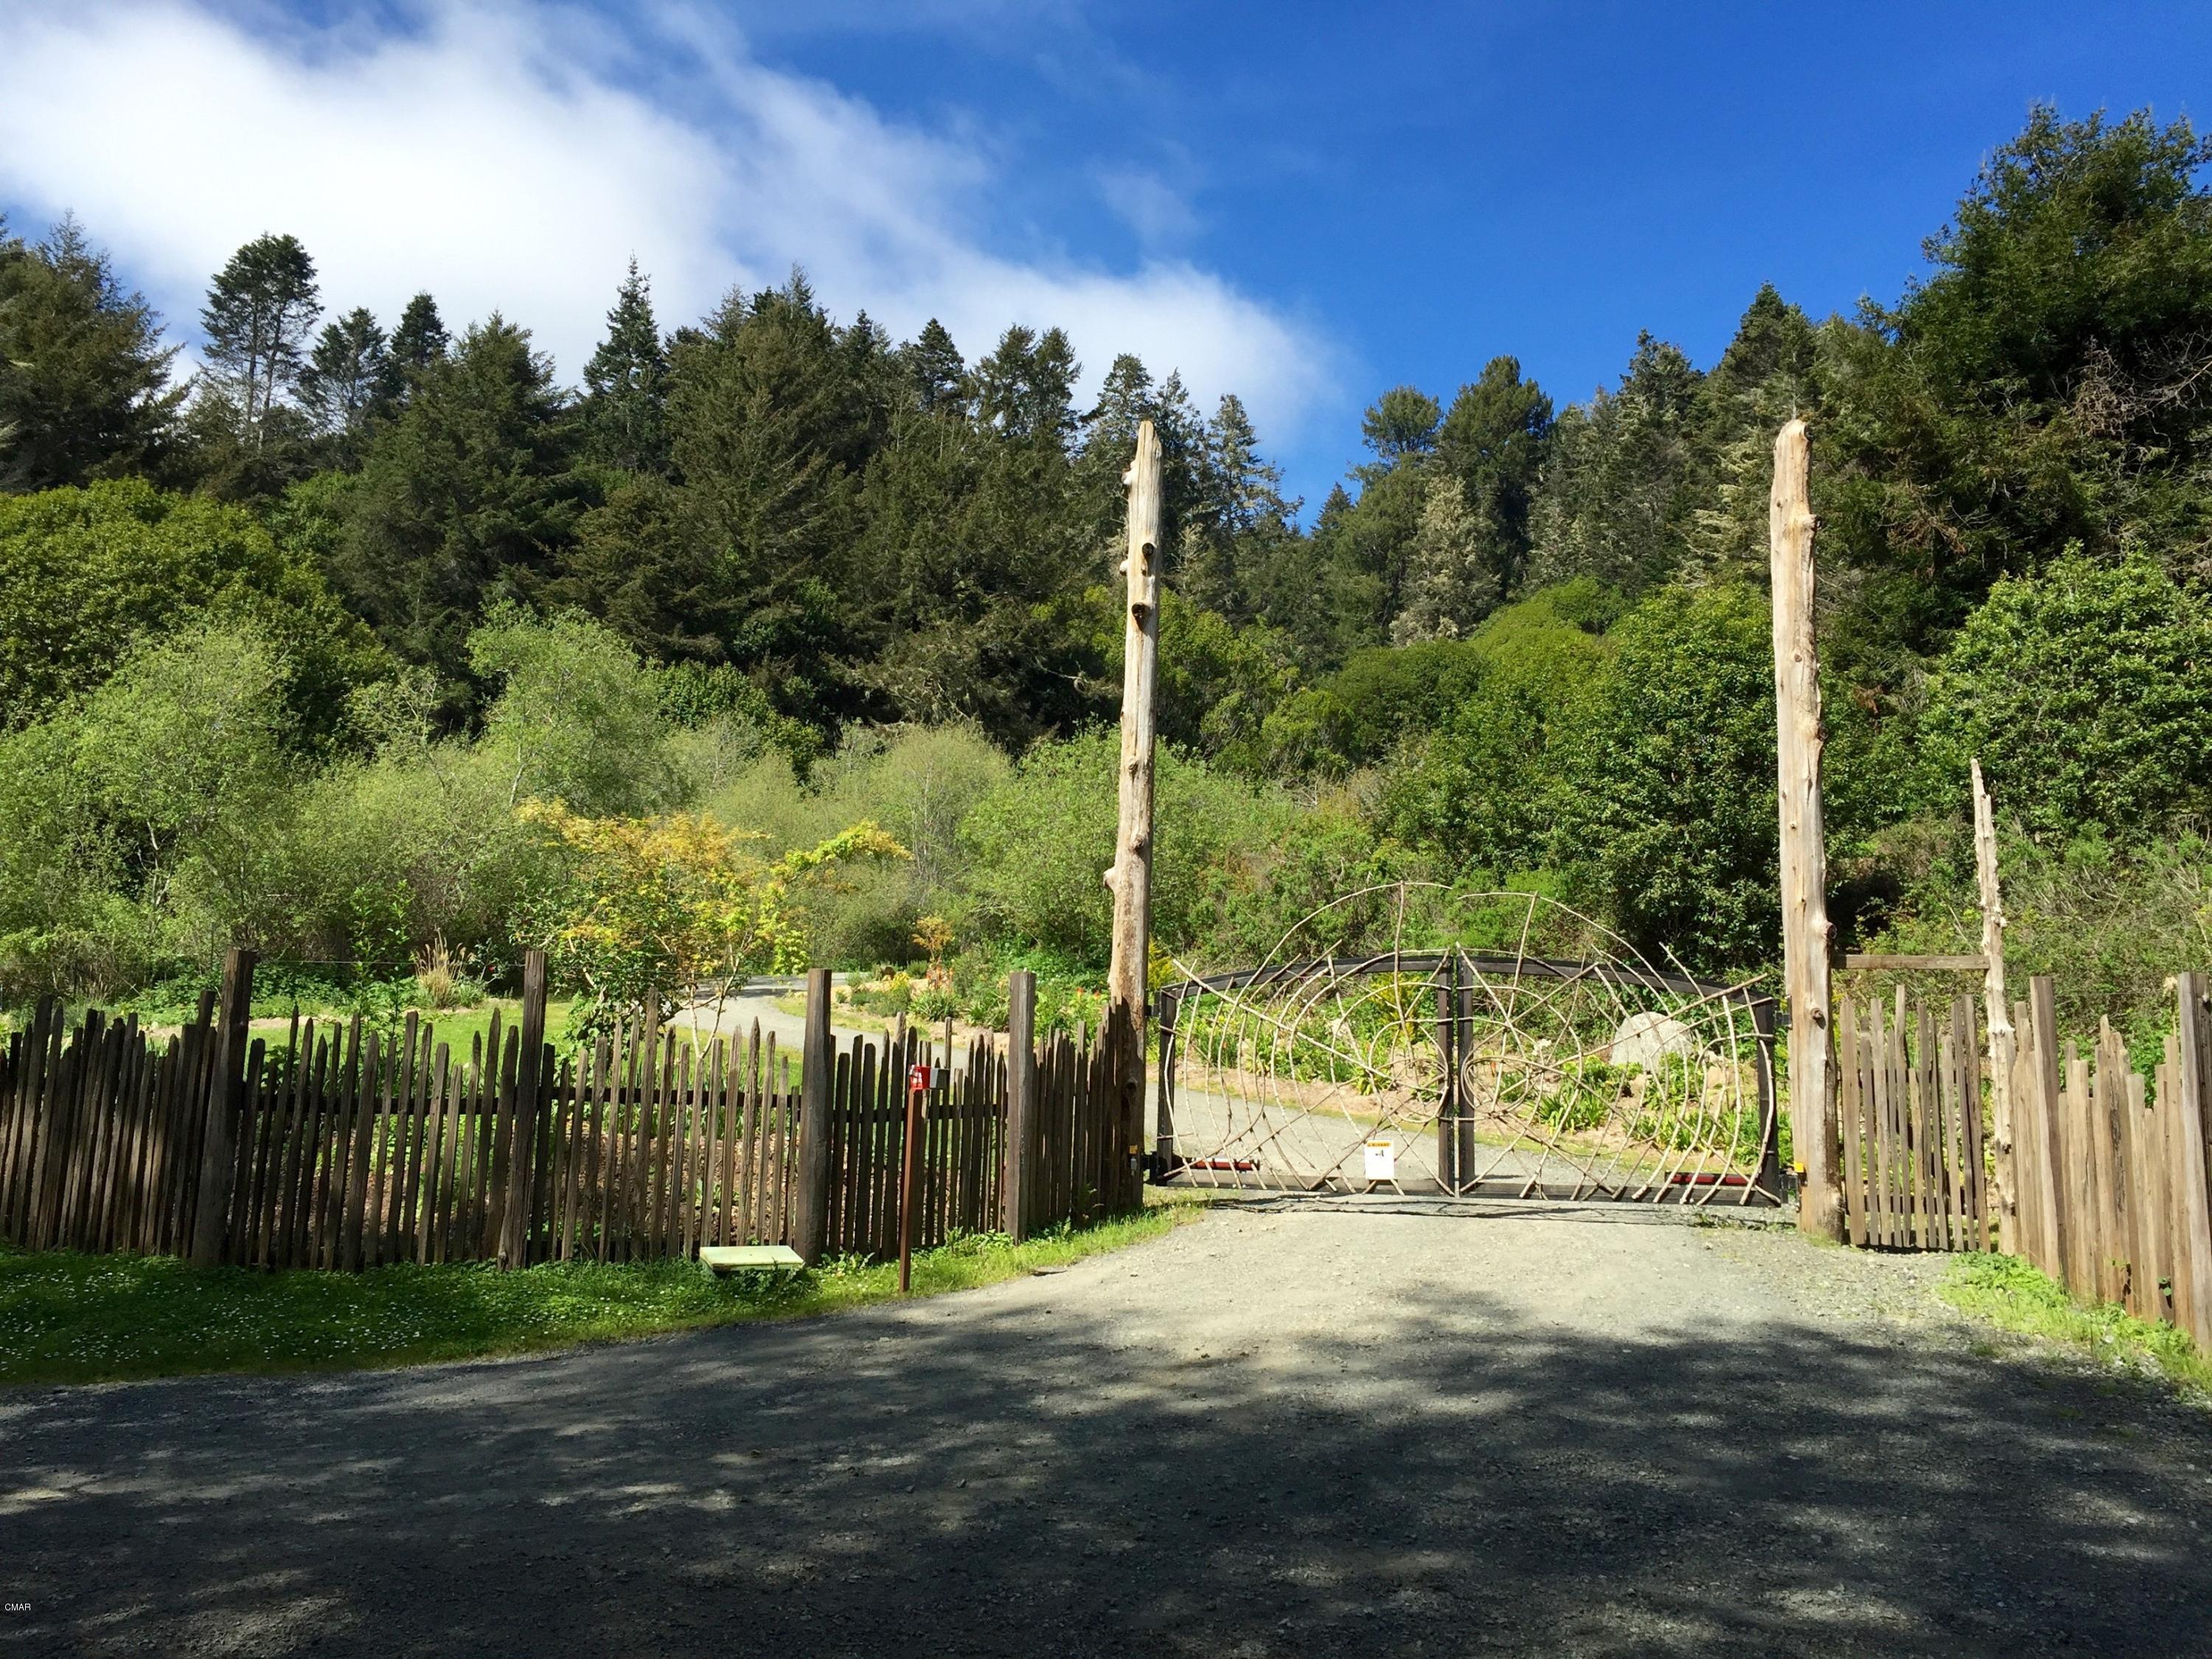 Single Family Home for Sale at 29100 Camp 2 10 Mile Road 29100 Camp 2 10 Mile Road Fort Bragg, California 95437 United States